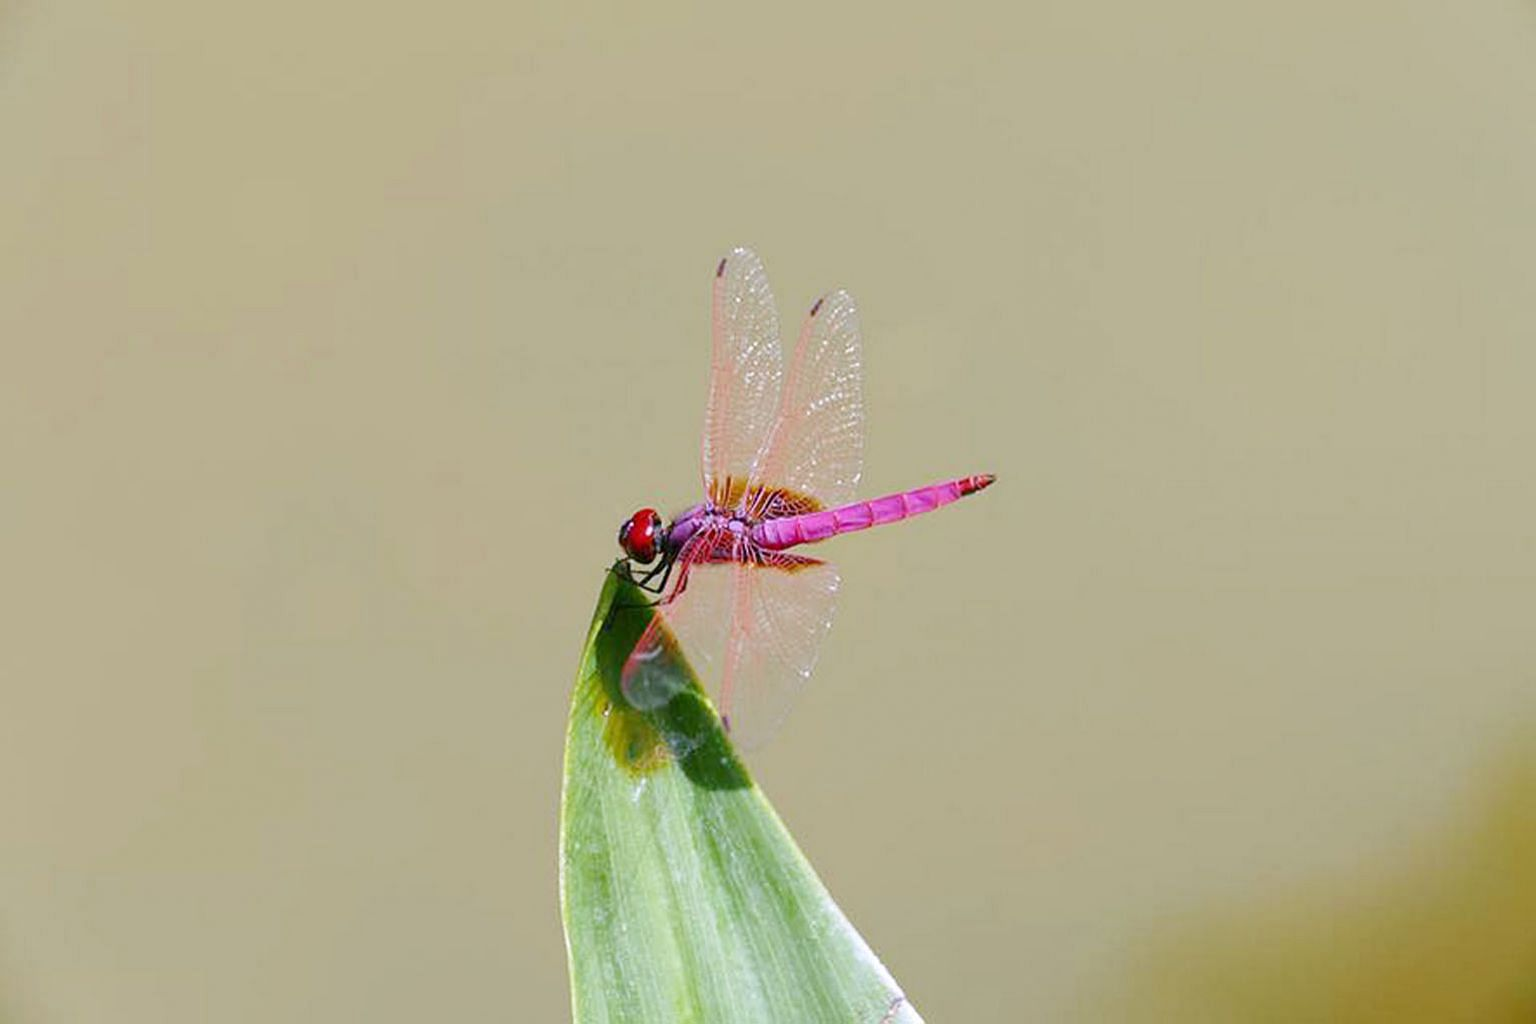 """Researchers at the Institute of Bioengineering and Nanotechnology are inspired by the wings of insects like the dragonfly, which are covered with minuscule """"nails"""" known as nanopillars that instantly tear apart bacteria coming into contact with them."""